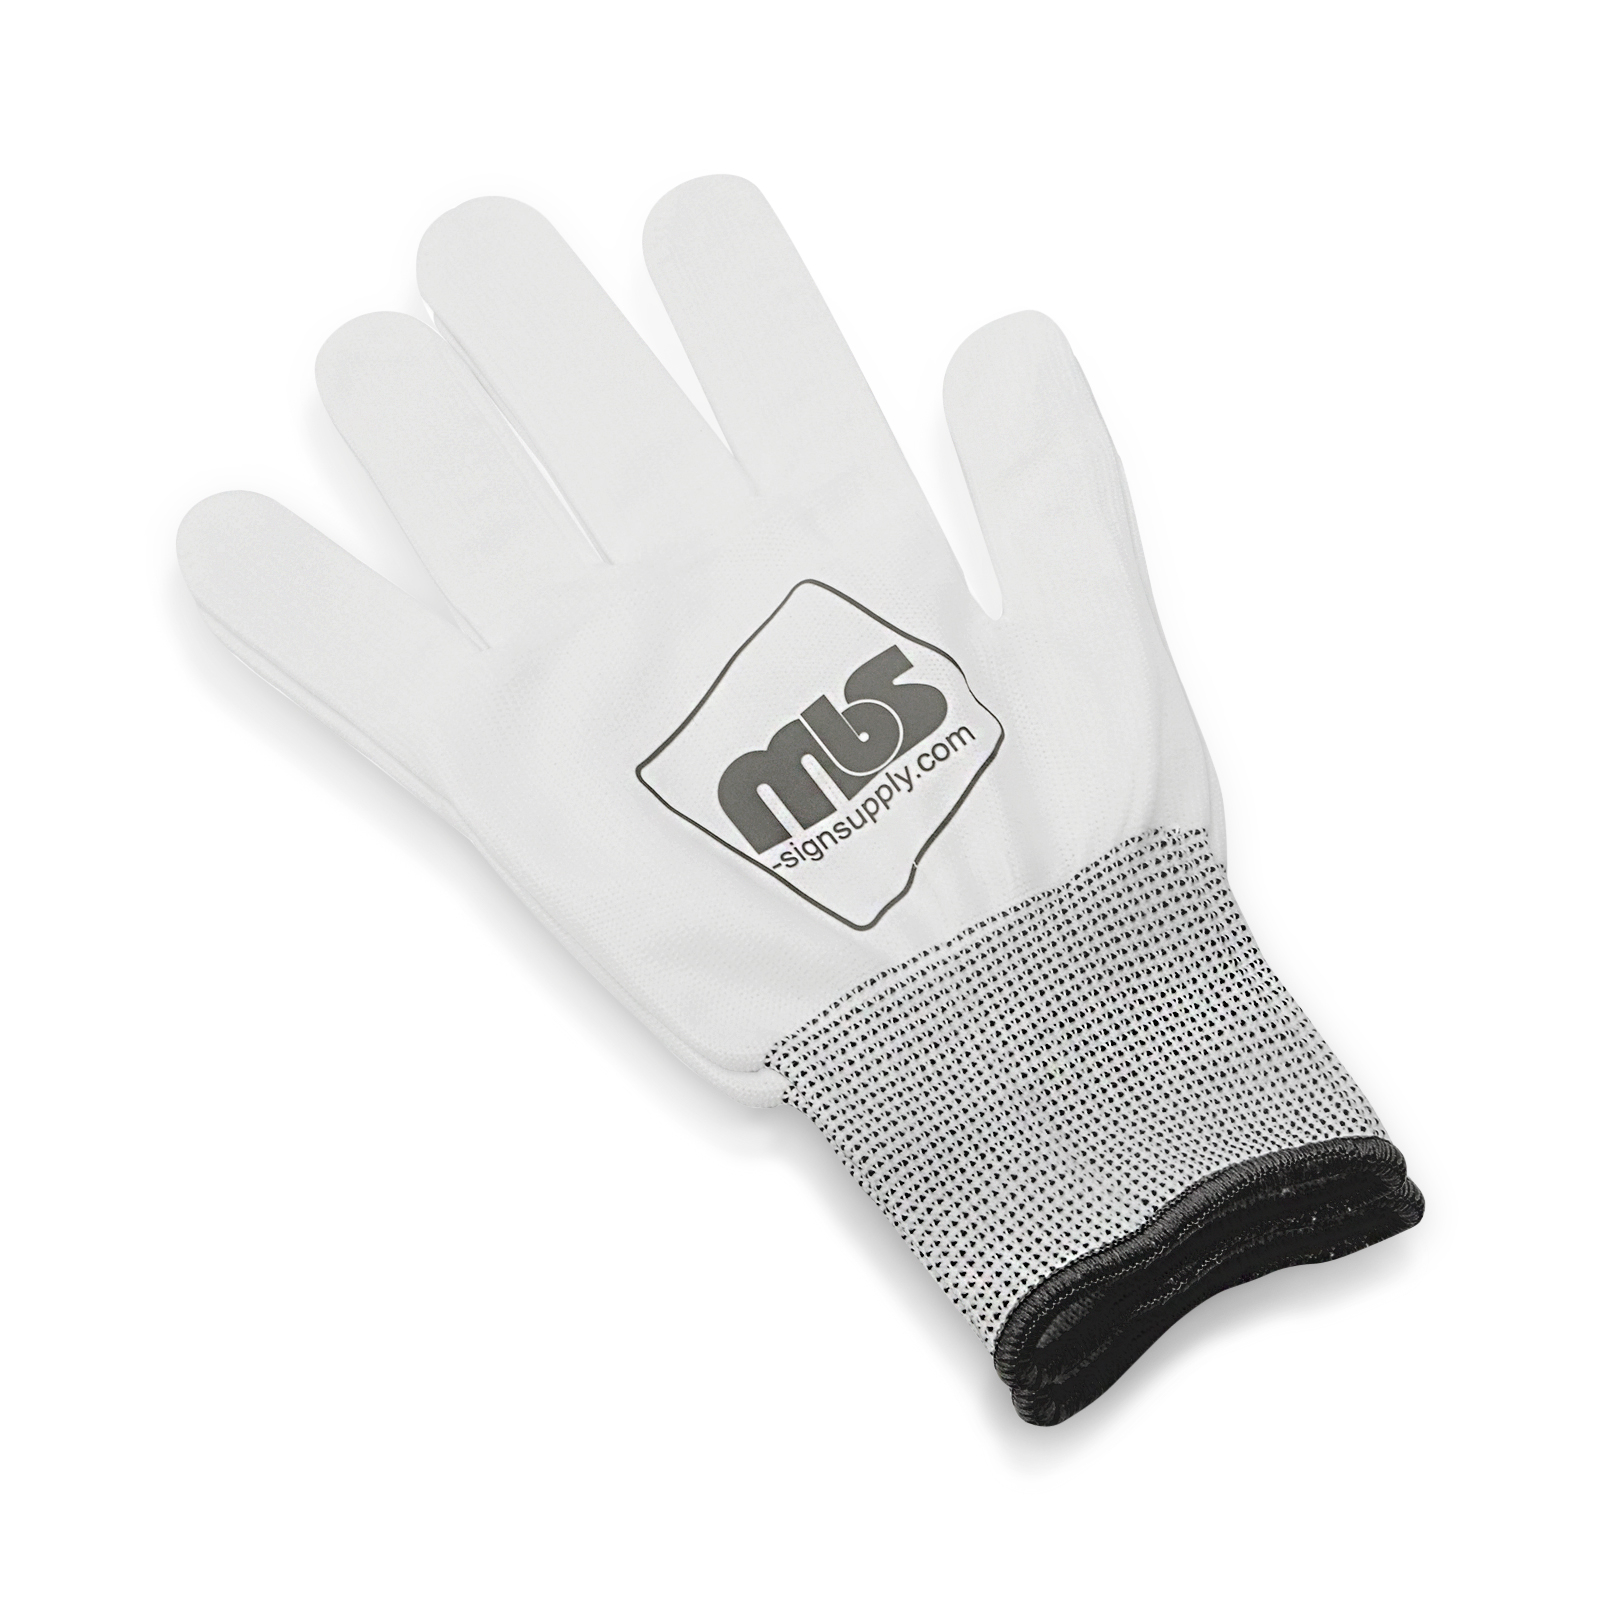 MBS White Professional Vinyl Wrap Anti-Static Application Gloves (Large)